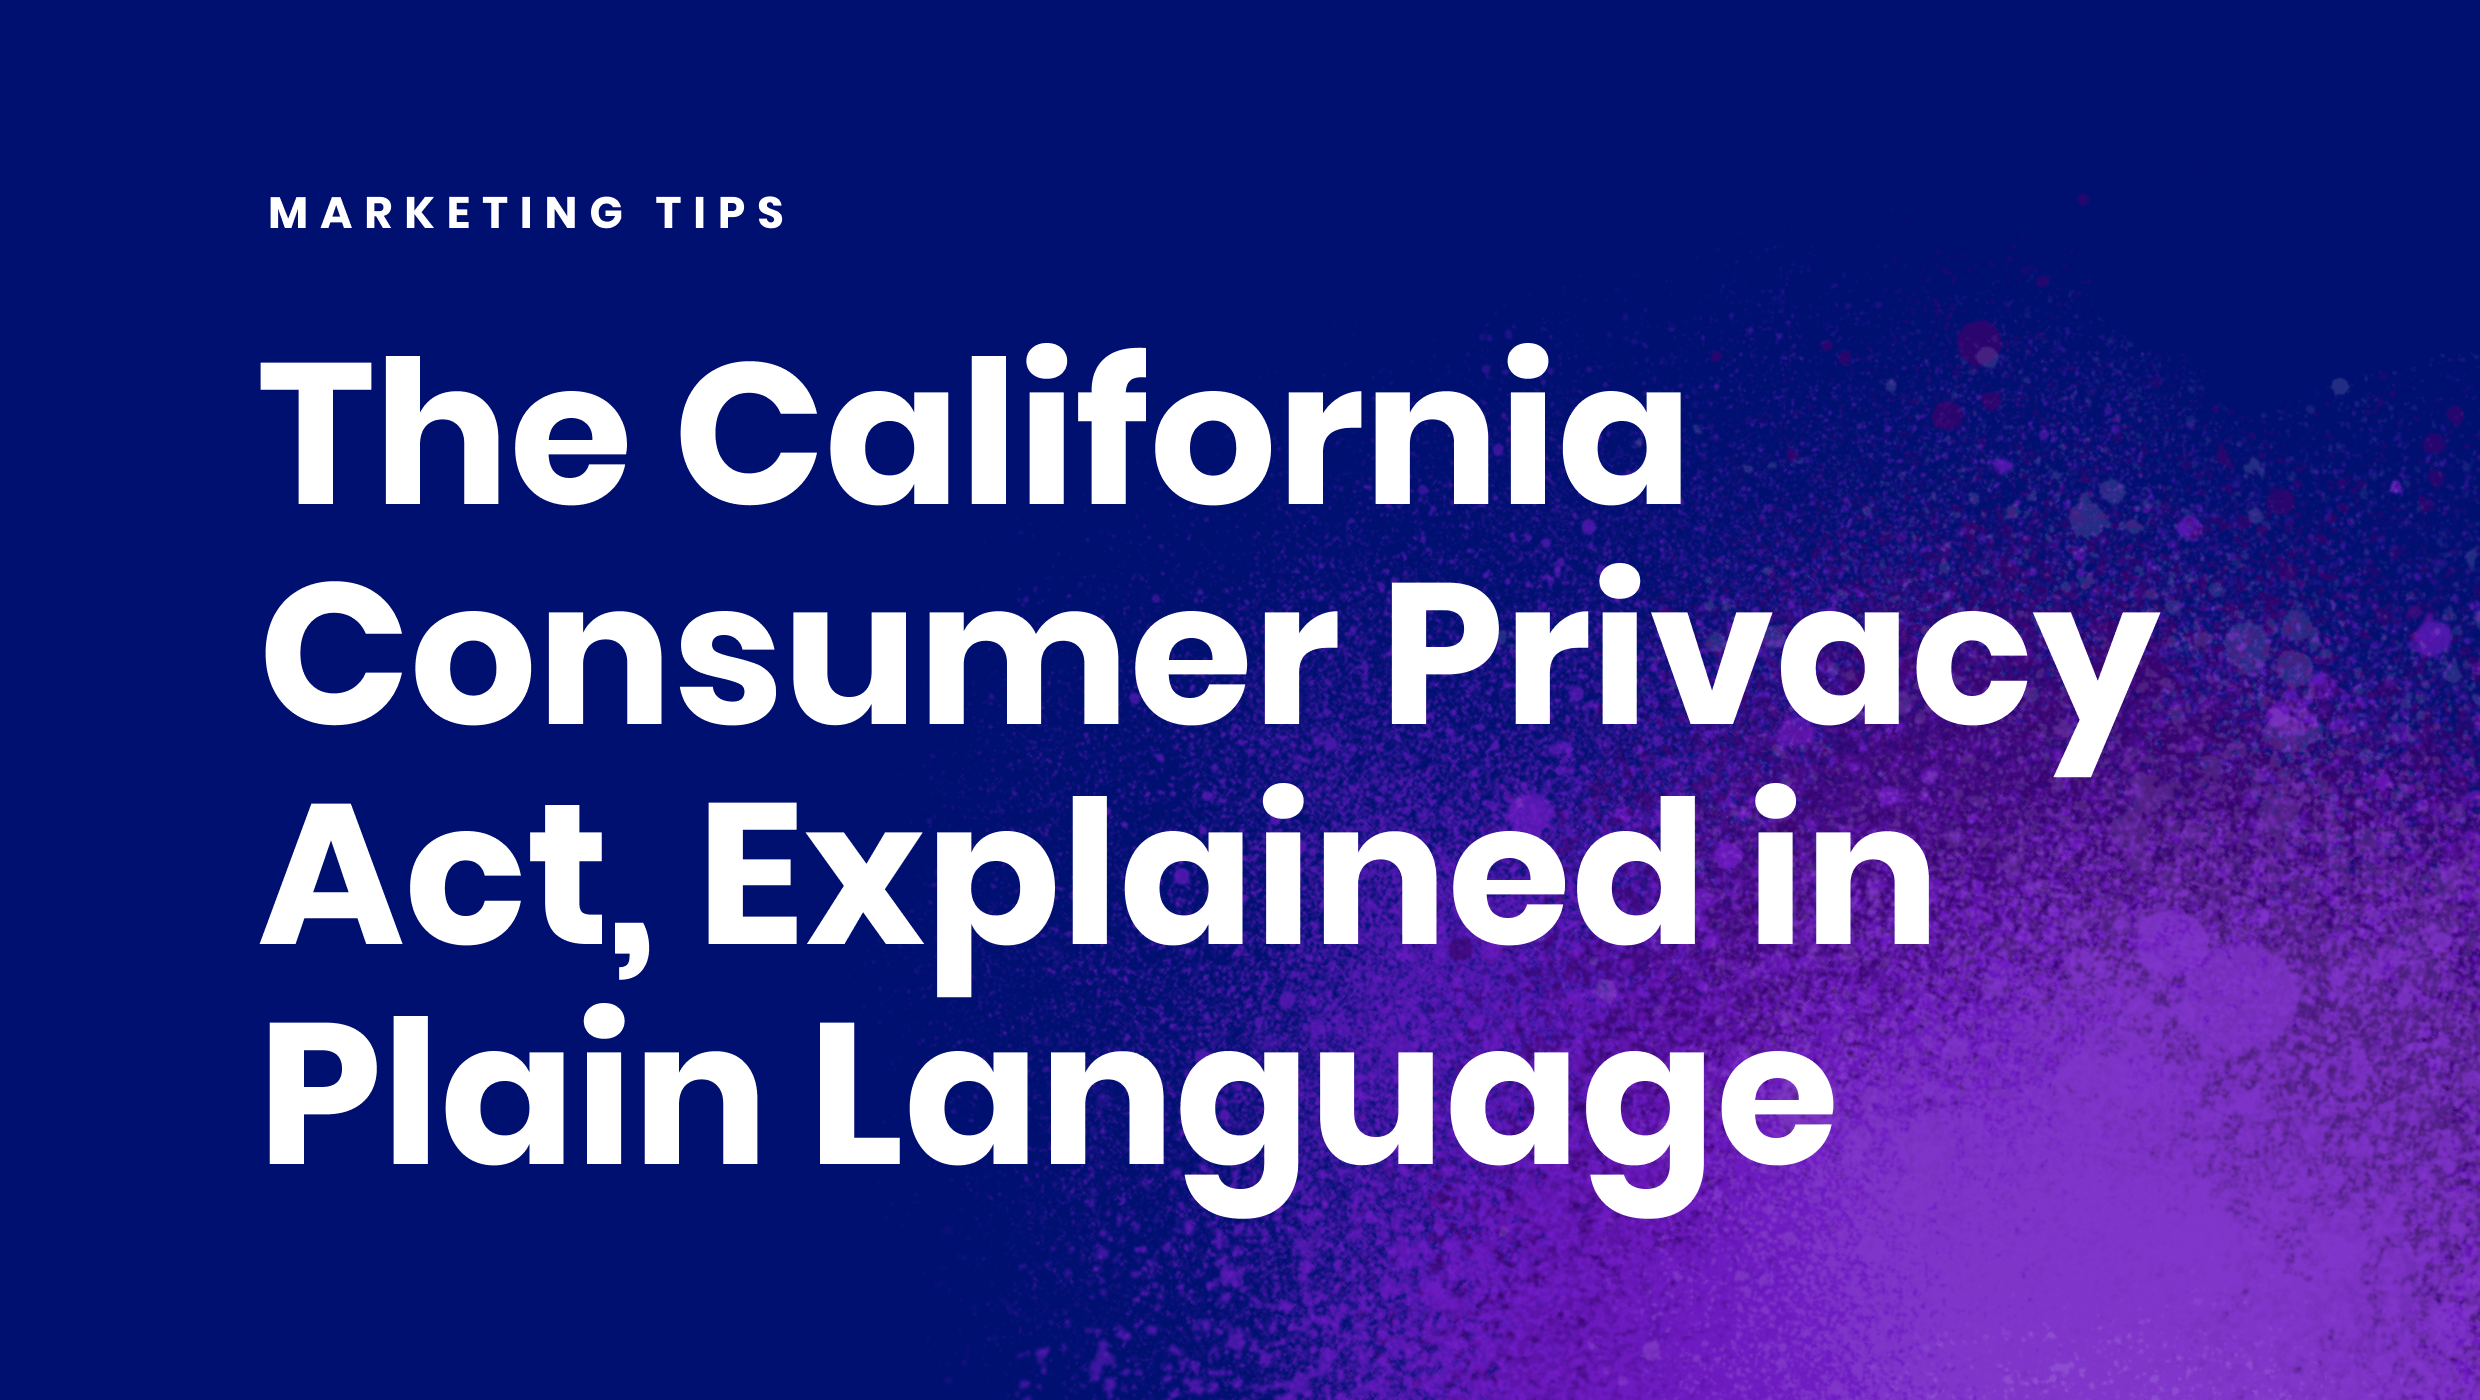 The California Consumer Privacy Act, explained